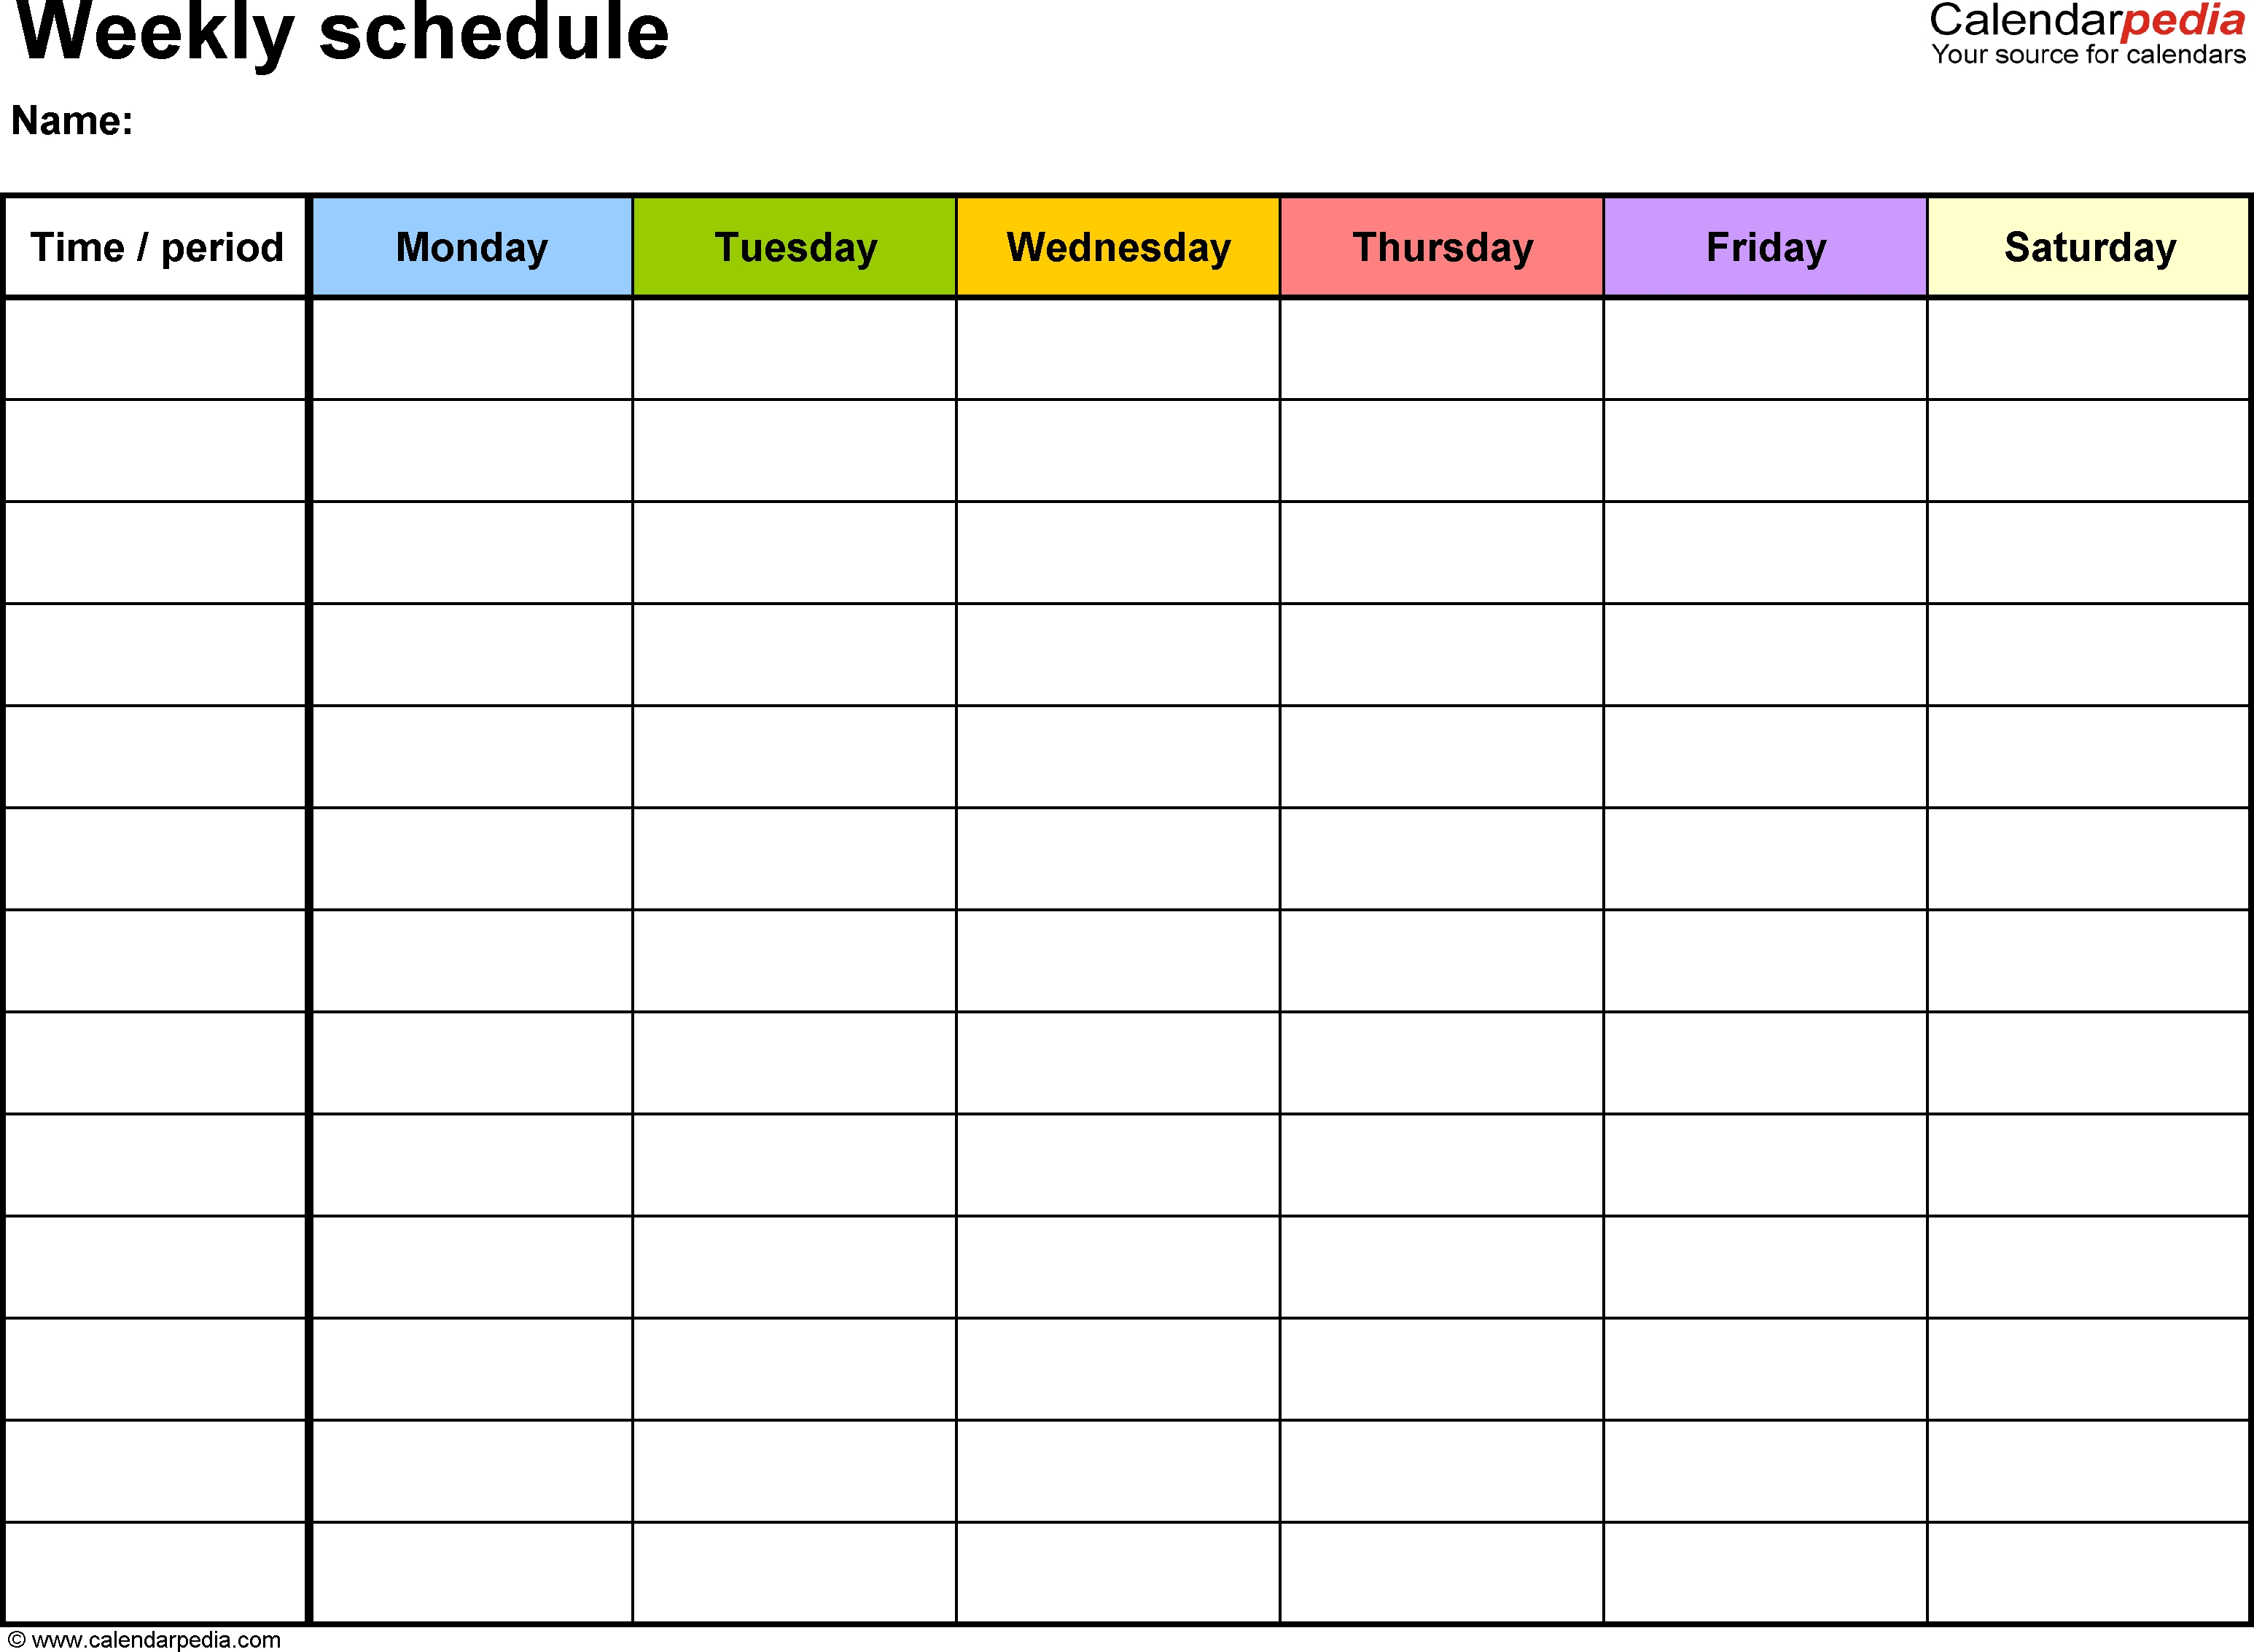 Free Weekly Schedule Templates For Word - 18 Templates-Free Printable Monday-Friday Monthly Calendar